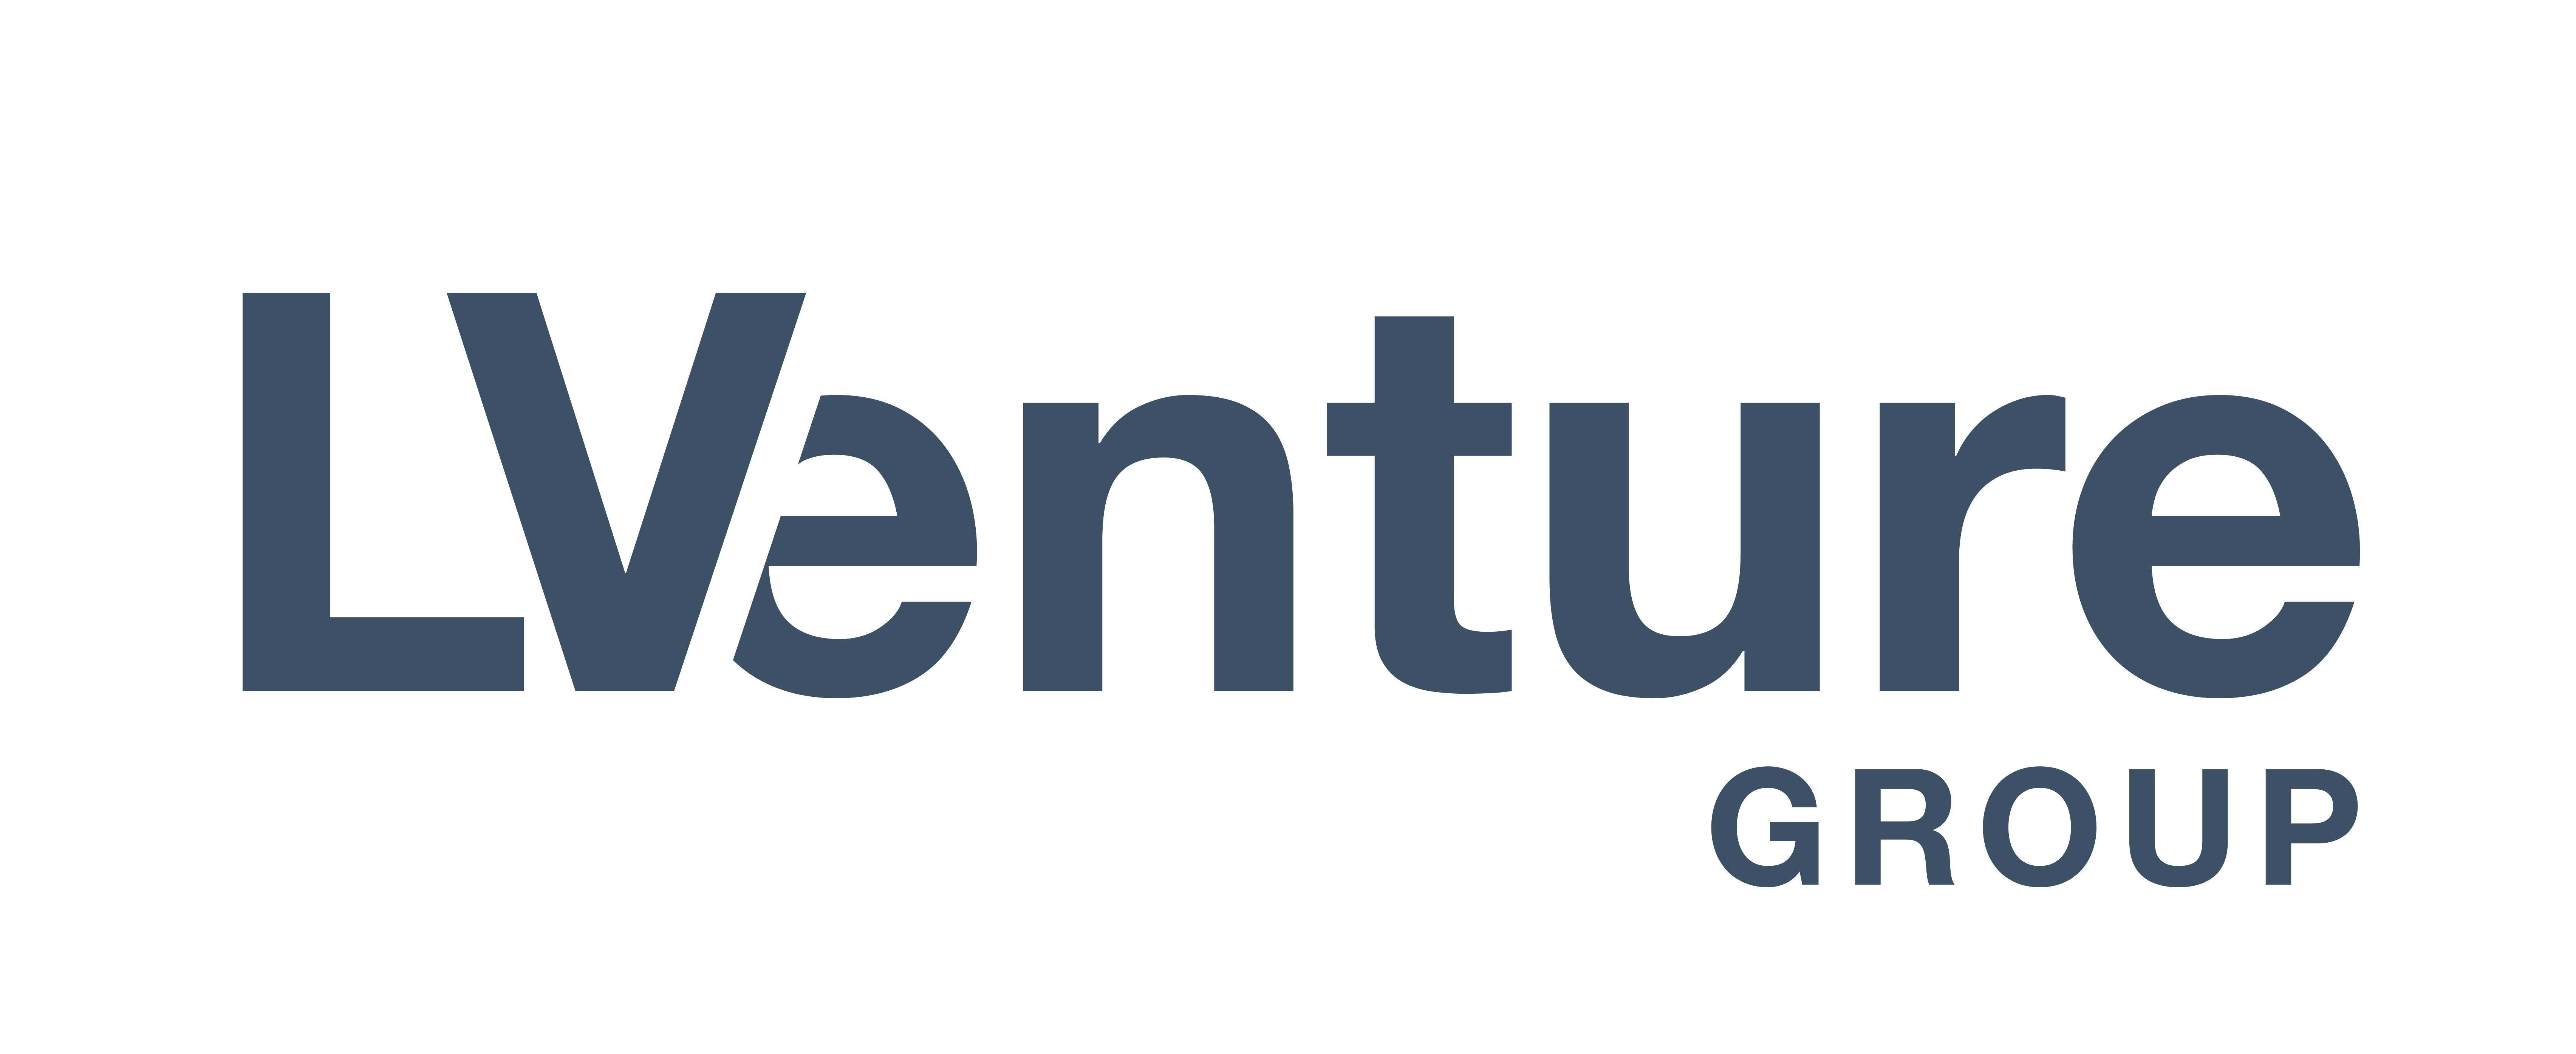 LVenture Group logo and link